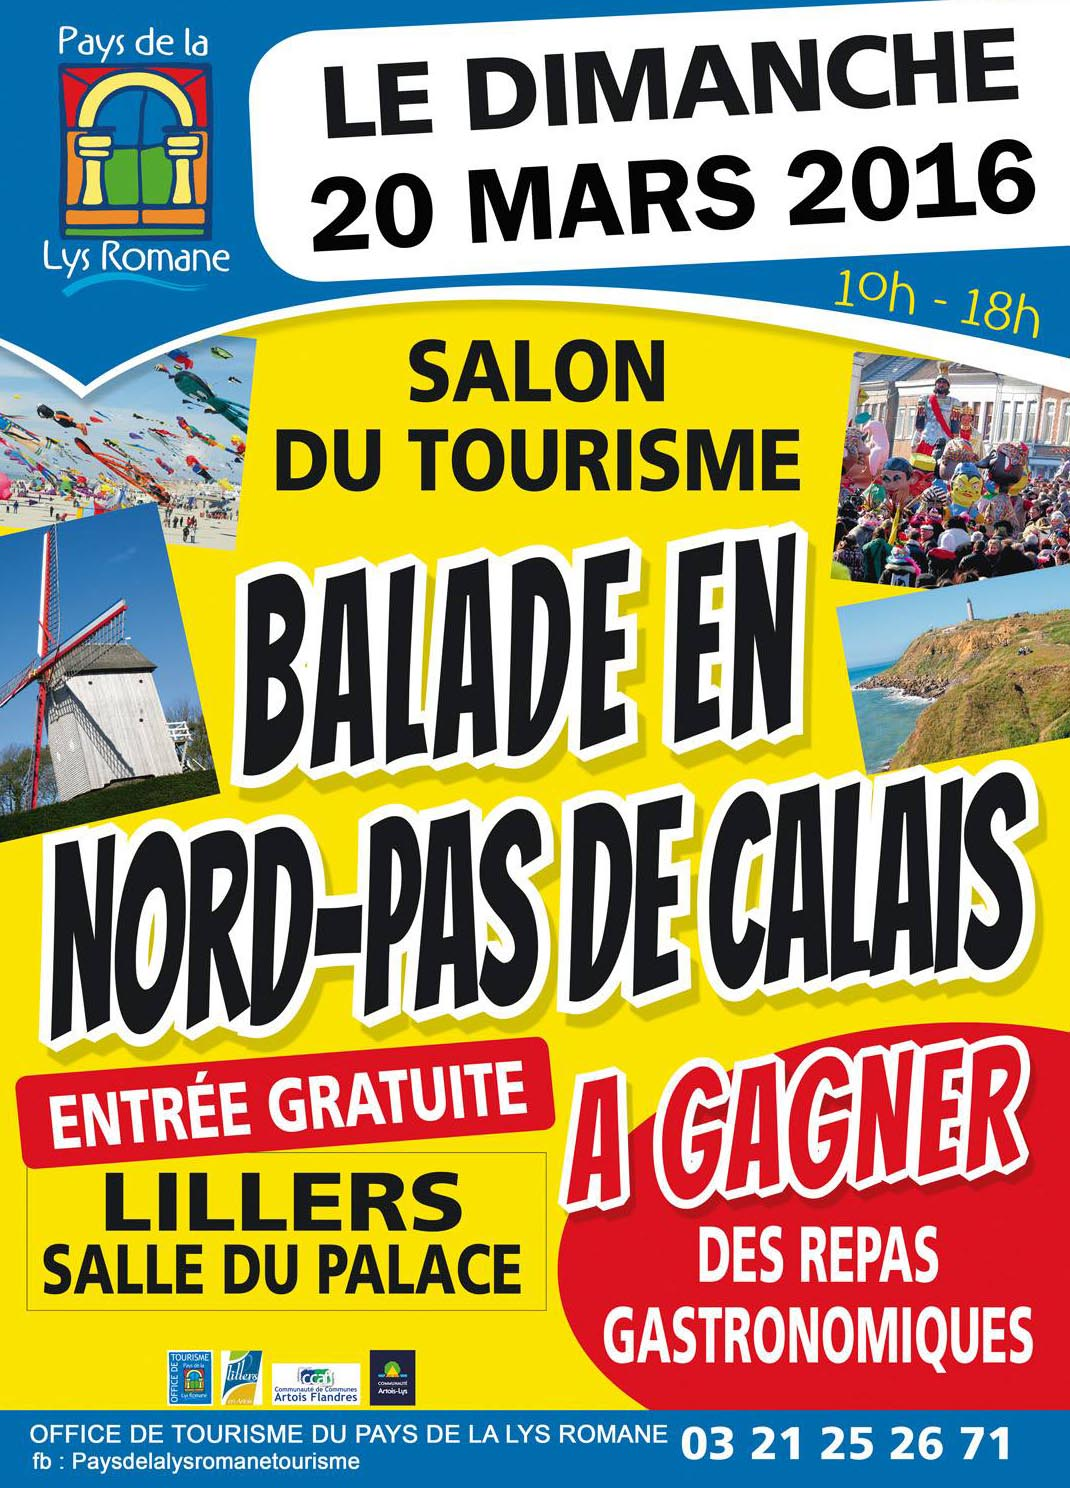 Salon Du Tourisme 2016 Agenda Culturel